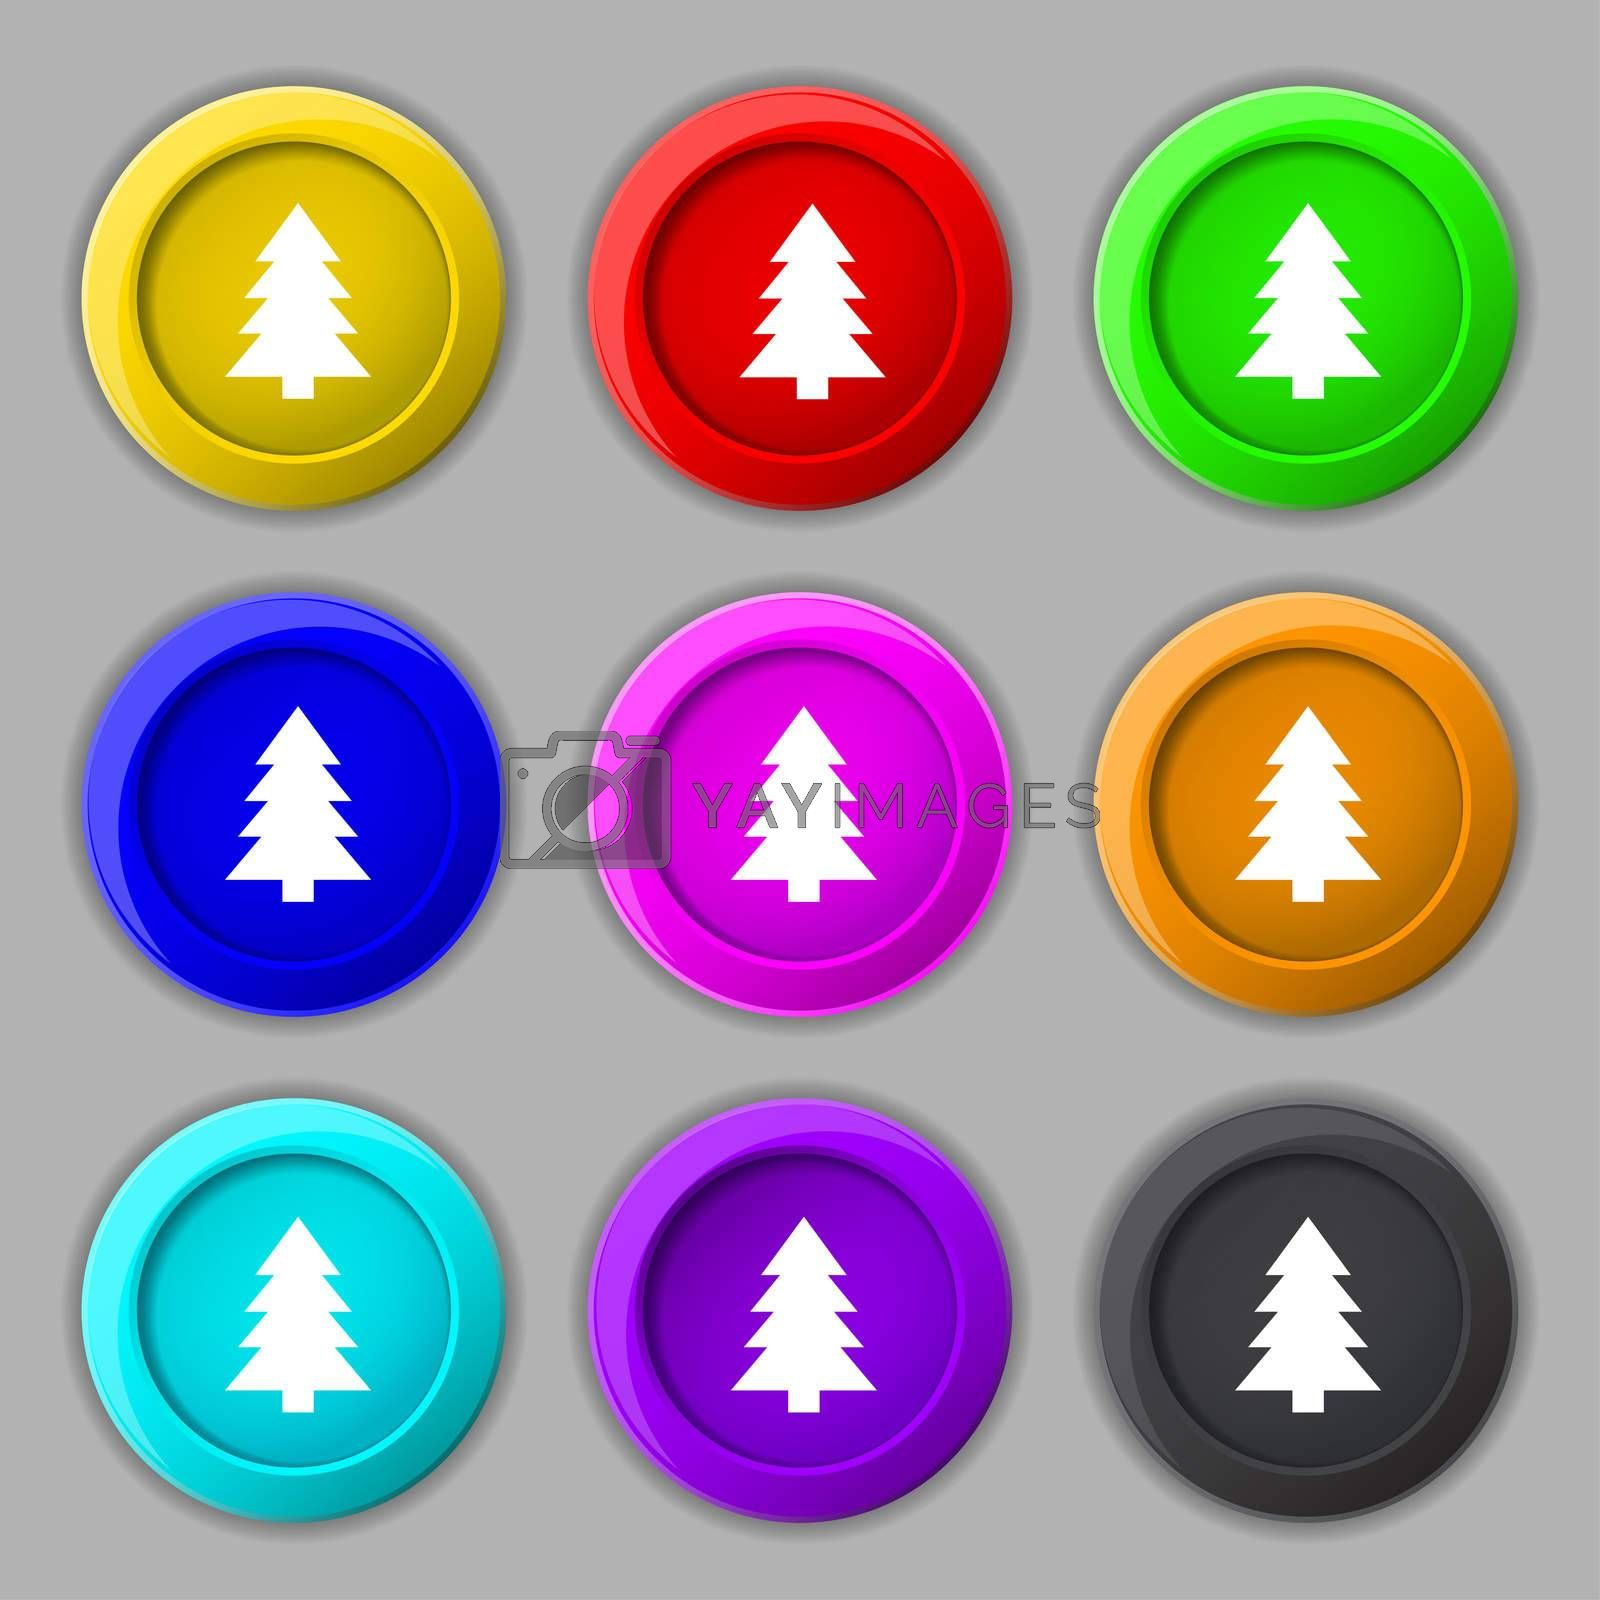 Christmas tree sign icon. Holidays button. Set of colored buttons.  by Serhii Lohvyniuk